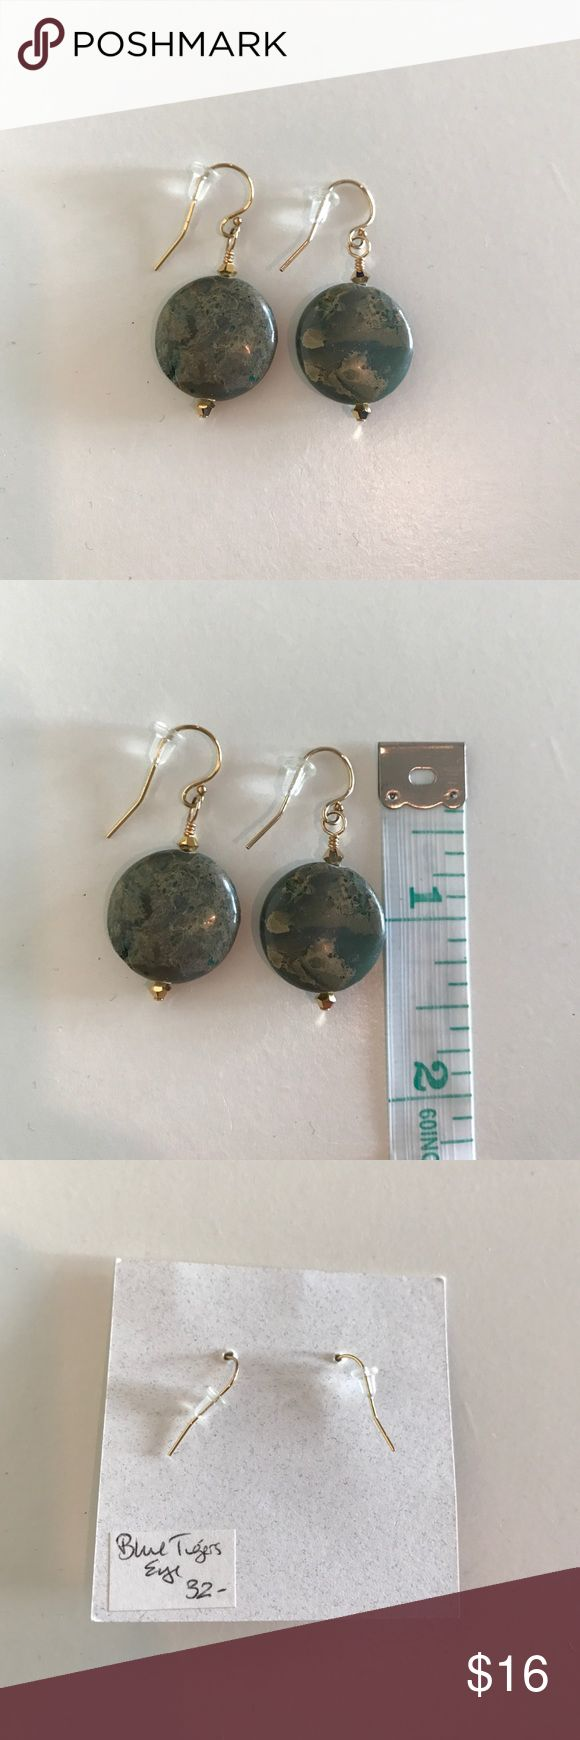 Blue Tigers Eye stone earrings with gold New, never worn. Quality item made by designer in Michigan. Comes with gift bag (pictured). Jewelry Earrings